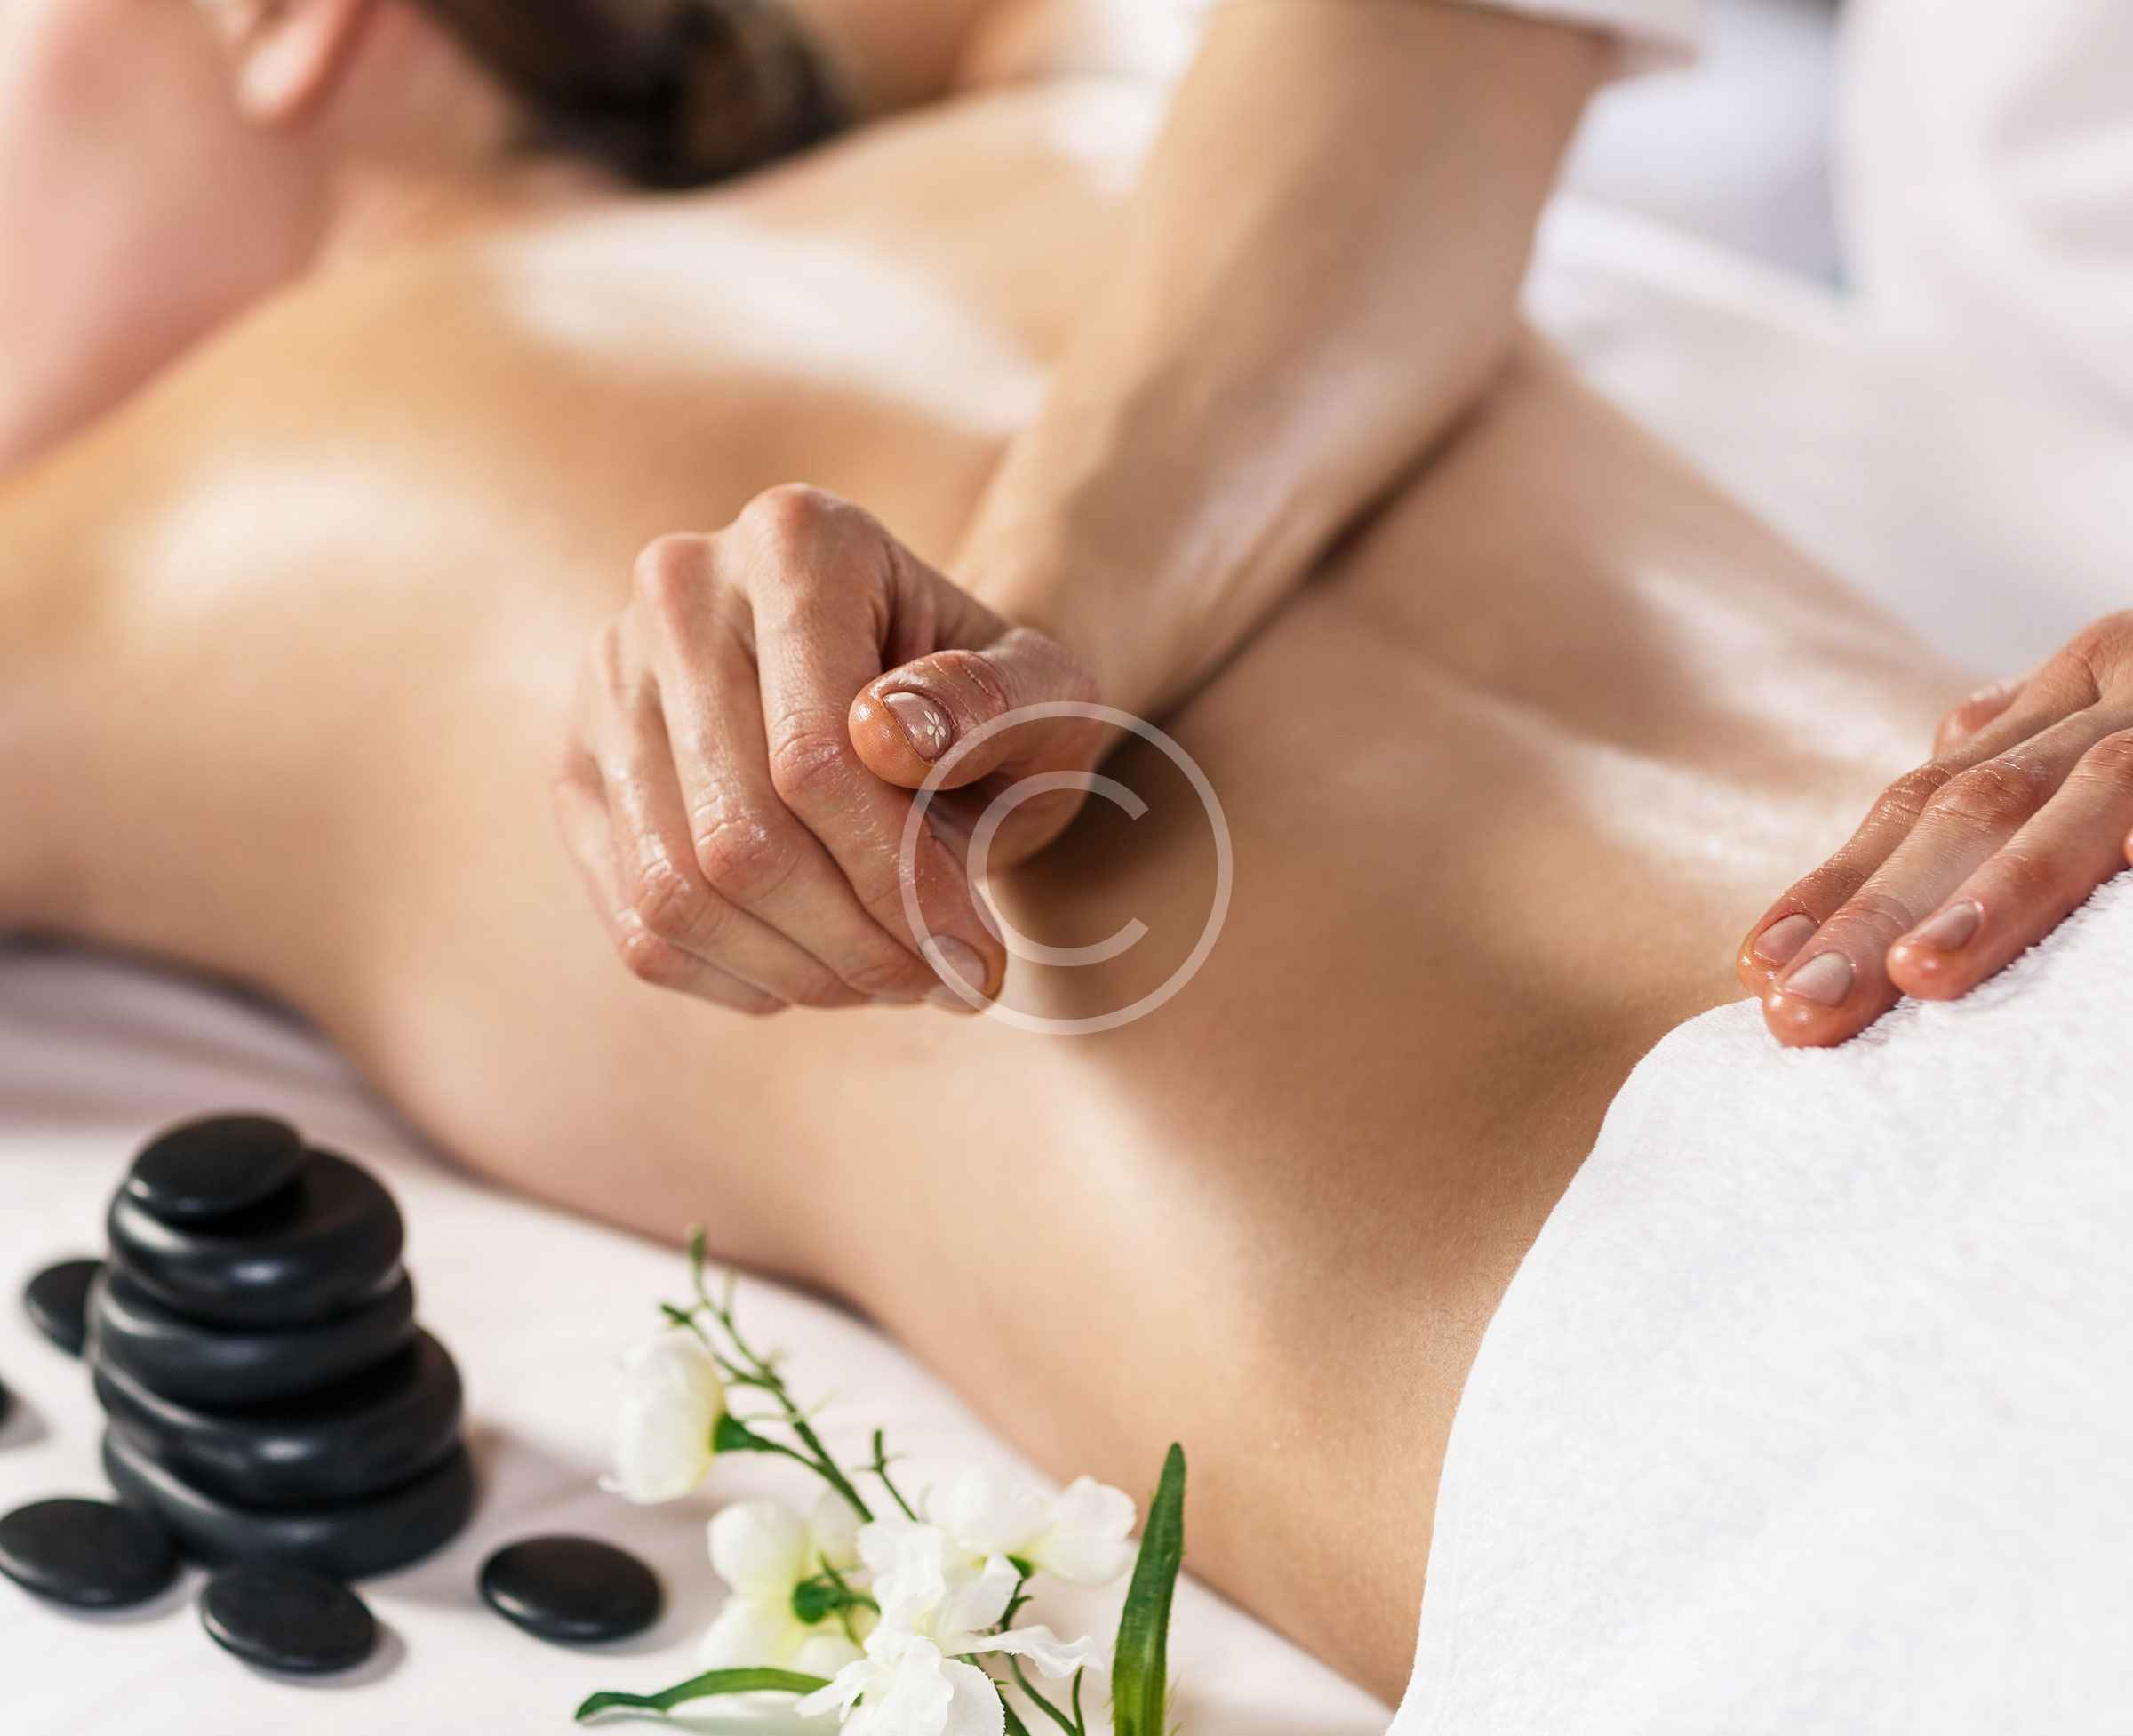 What You Need to Know About Deep Tissue Massage